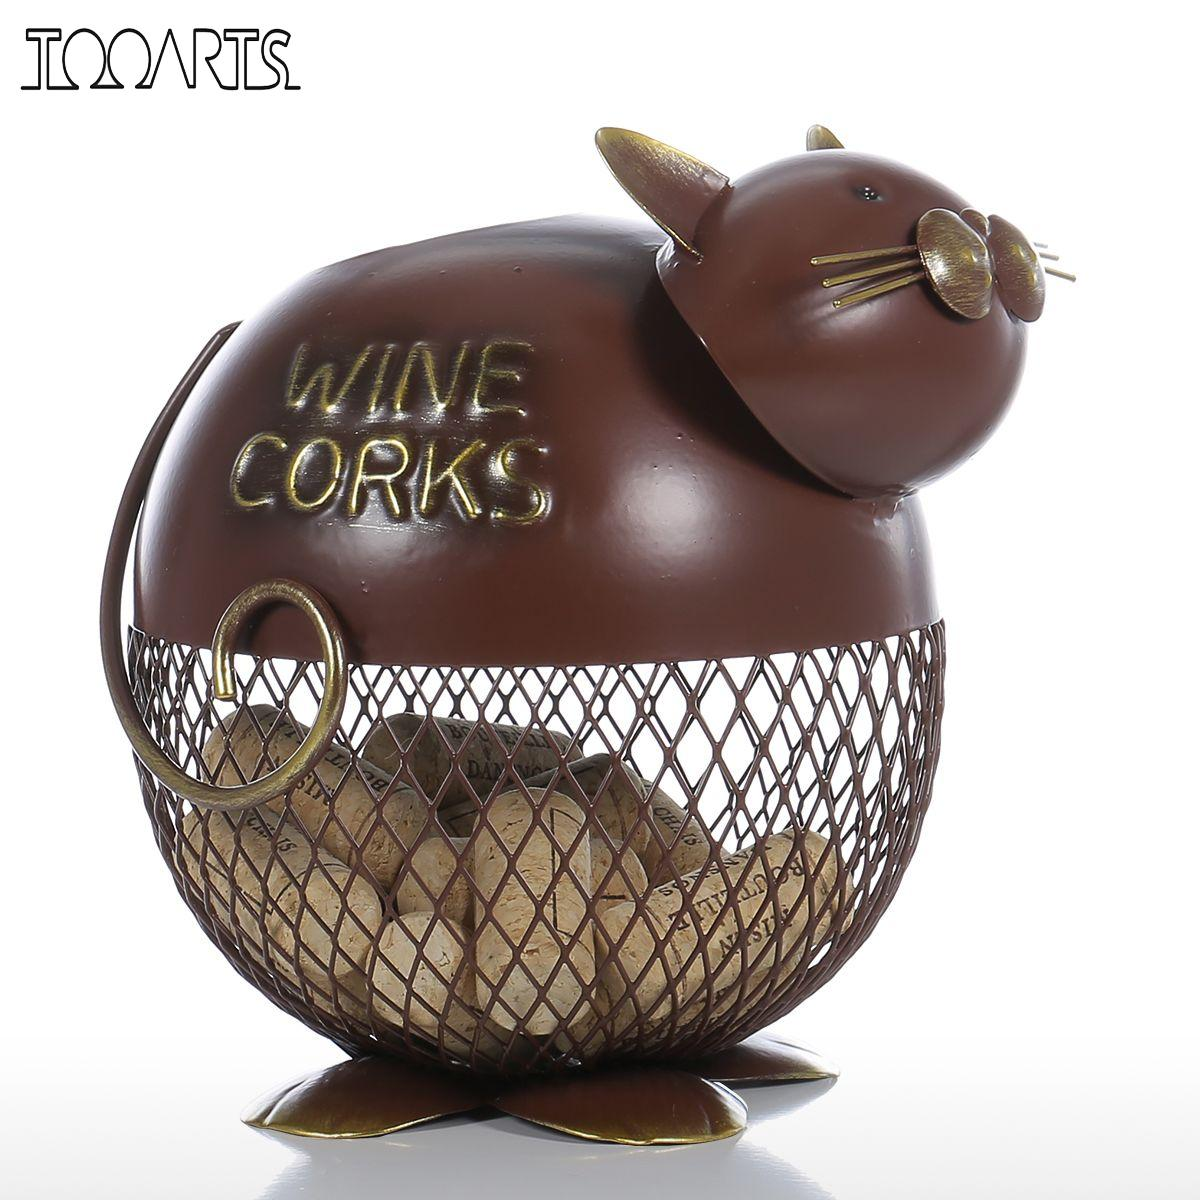 Tooarts Puffy Cat Wine Cork Container Vintage Home Decor Metal Sculpture Animal Decoration Craft Gift